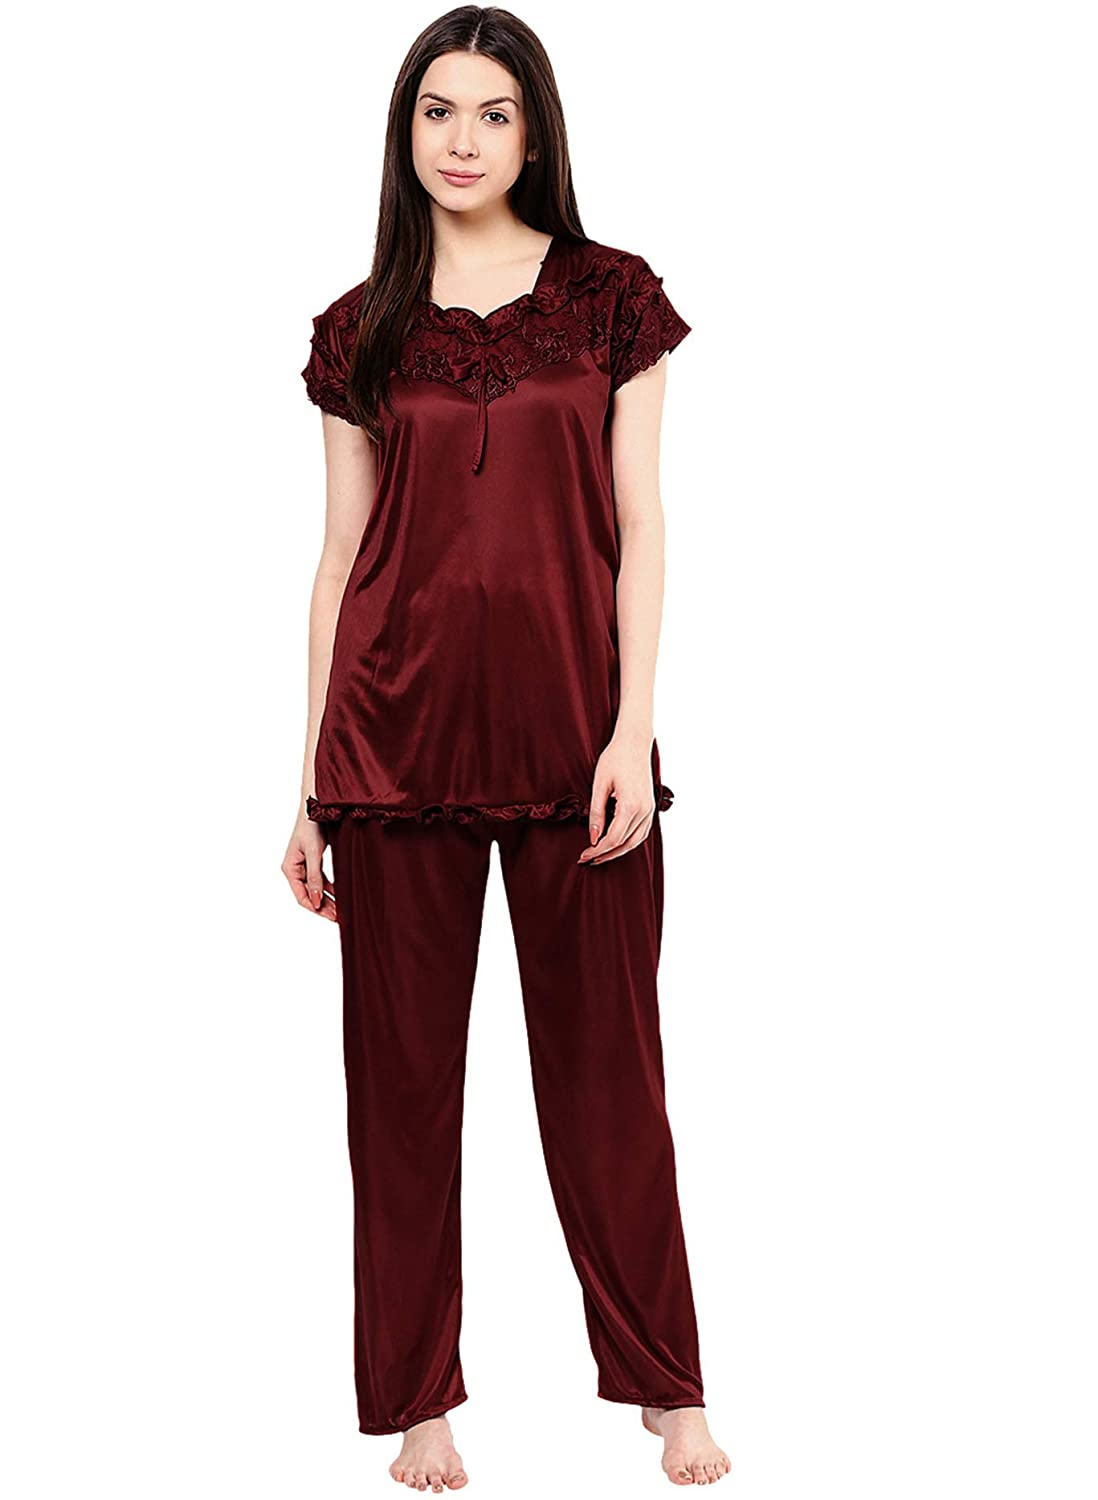 00a309b261 Phalin Women's Satin Night Suits Set (Multicolour, Free Size) - Pack of 2:  Amazon.in: Clothing & Accessories